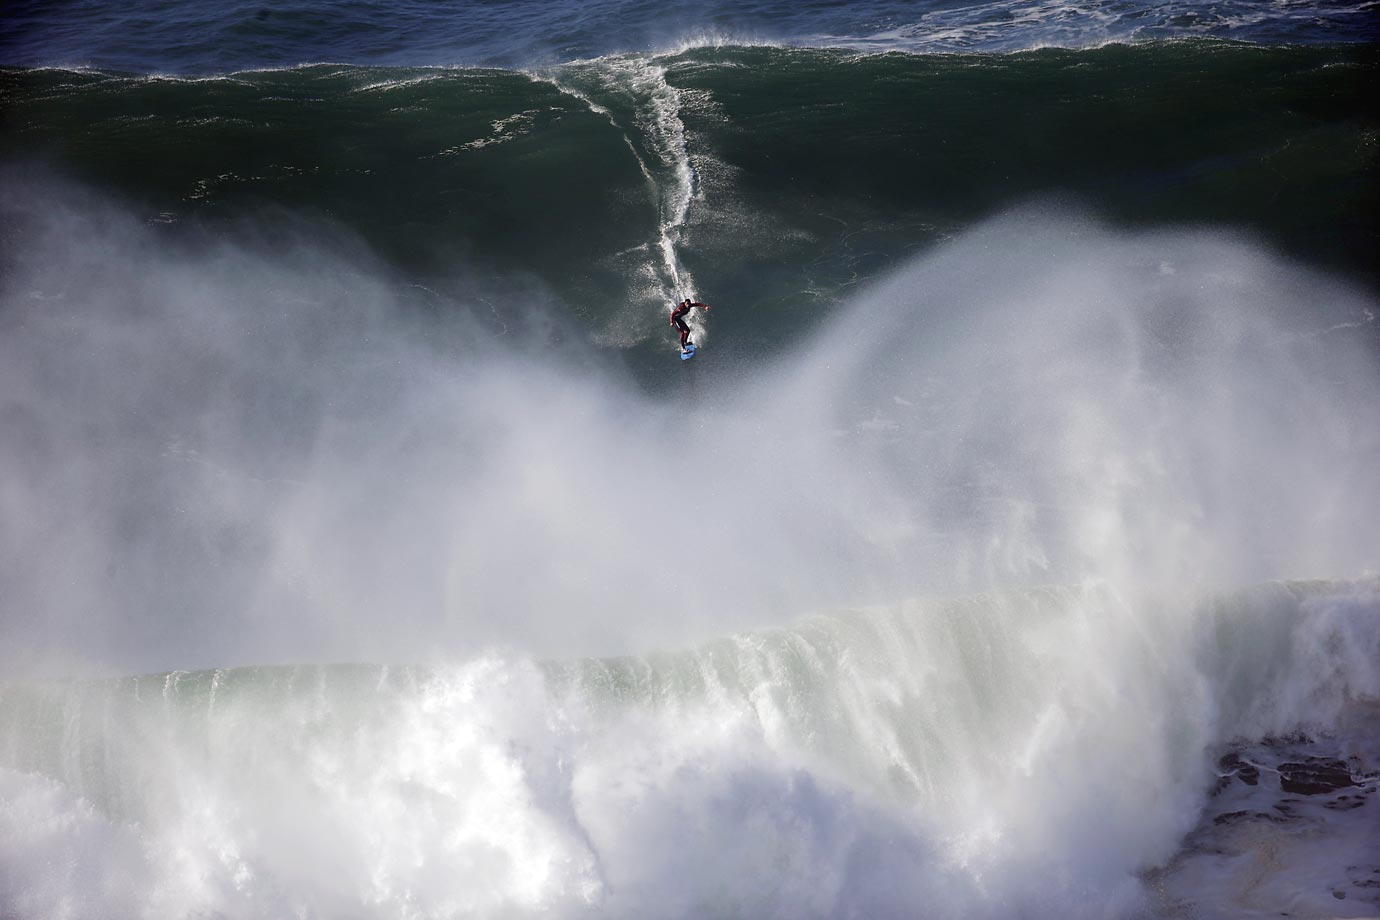 A surfer rides a wave during a tow-in surfing session at the Praia do Norte beach in Nazare, Portugal.